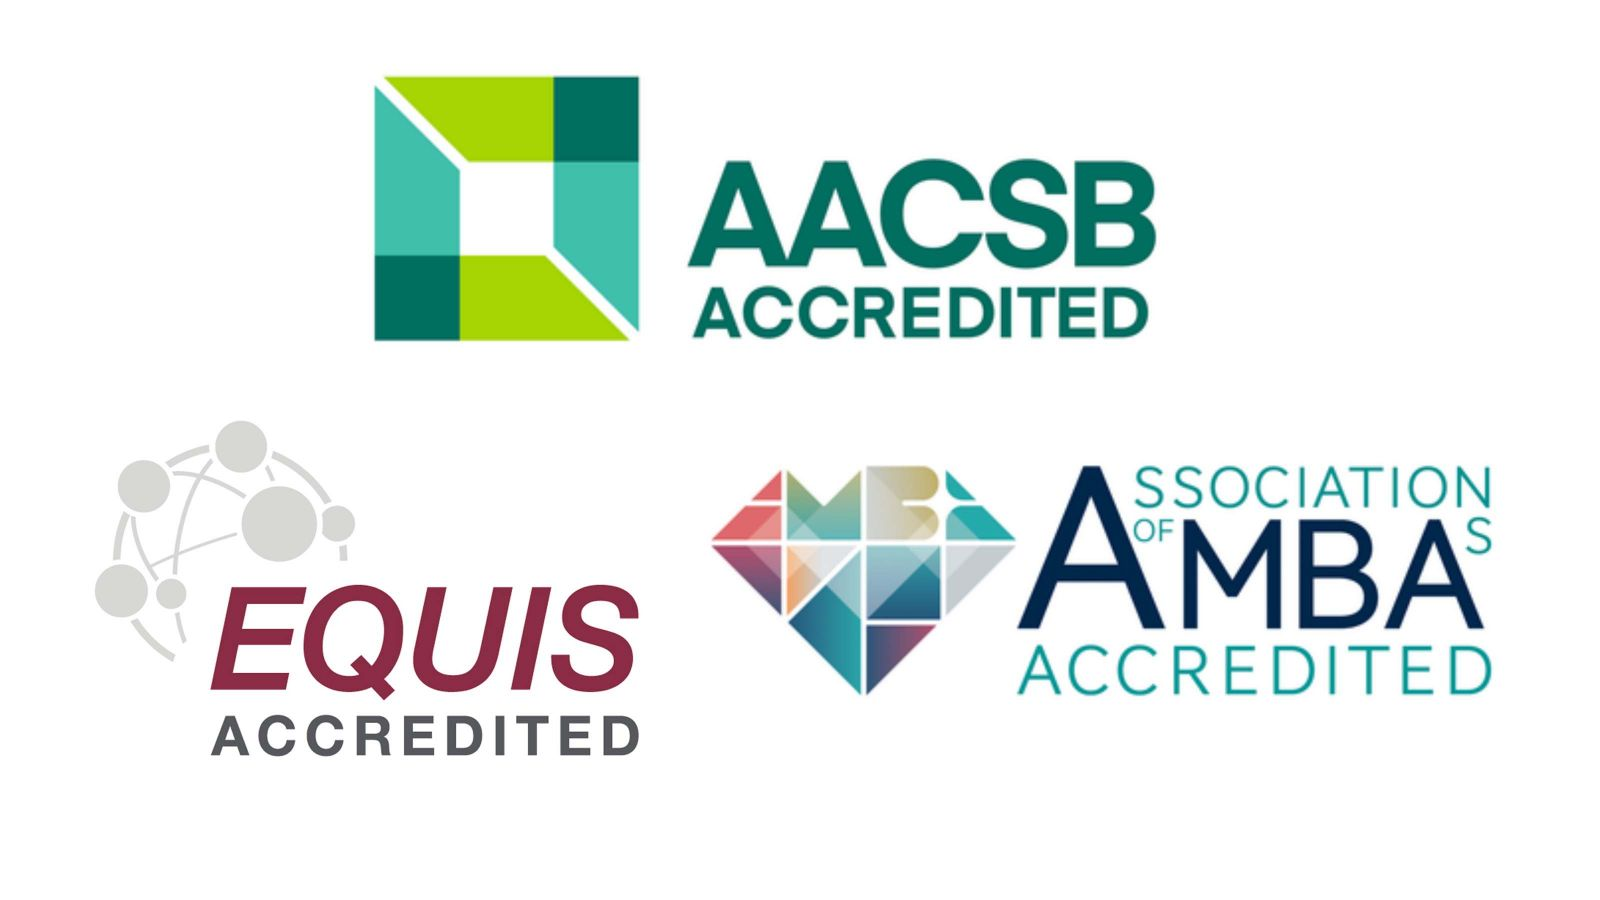 Triple crown logos – AACSB, EQUIS and AMBA.